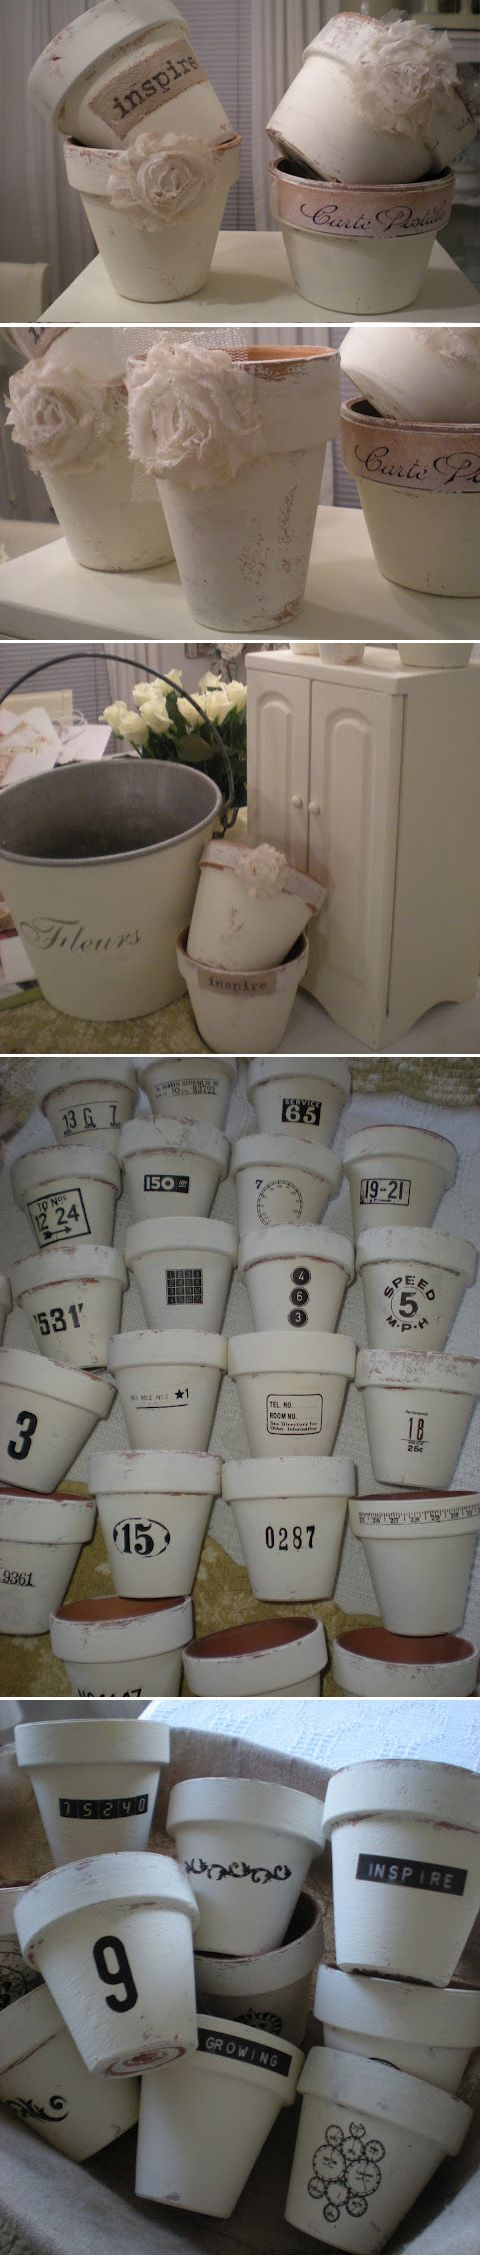 DIY FLOWER POTS :: White chalk painted terra cotta pots (using ASCP) w/ burlap decoupaged on some & others with rub on transfers to embellish them. GOTTA MAKE THESE! | #chalkpaint #flowerpots #planter #restyle